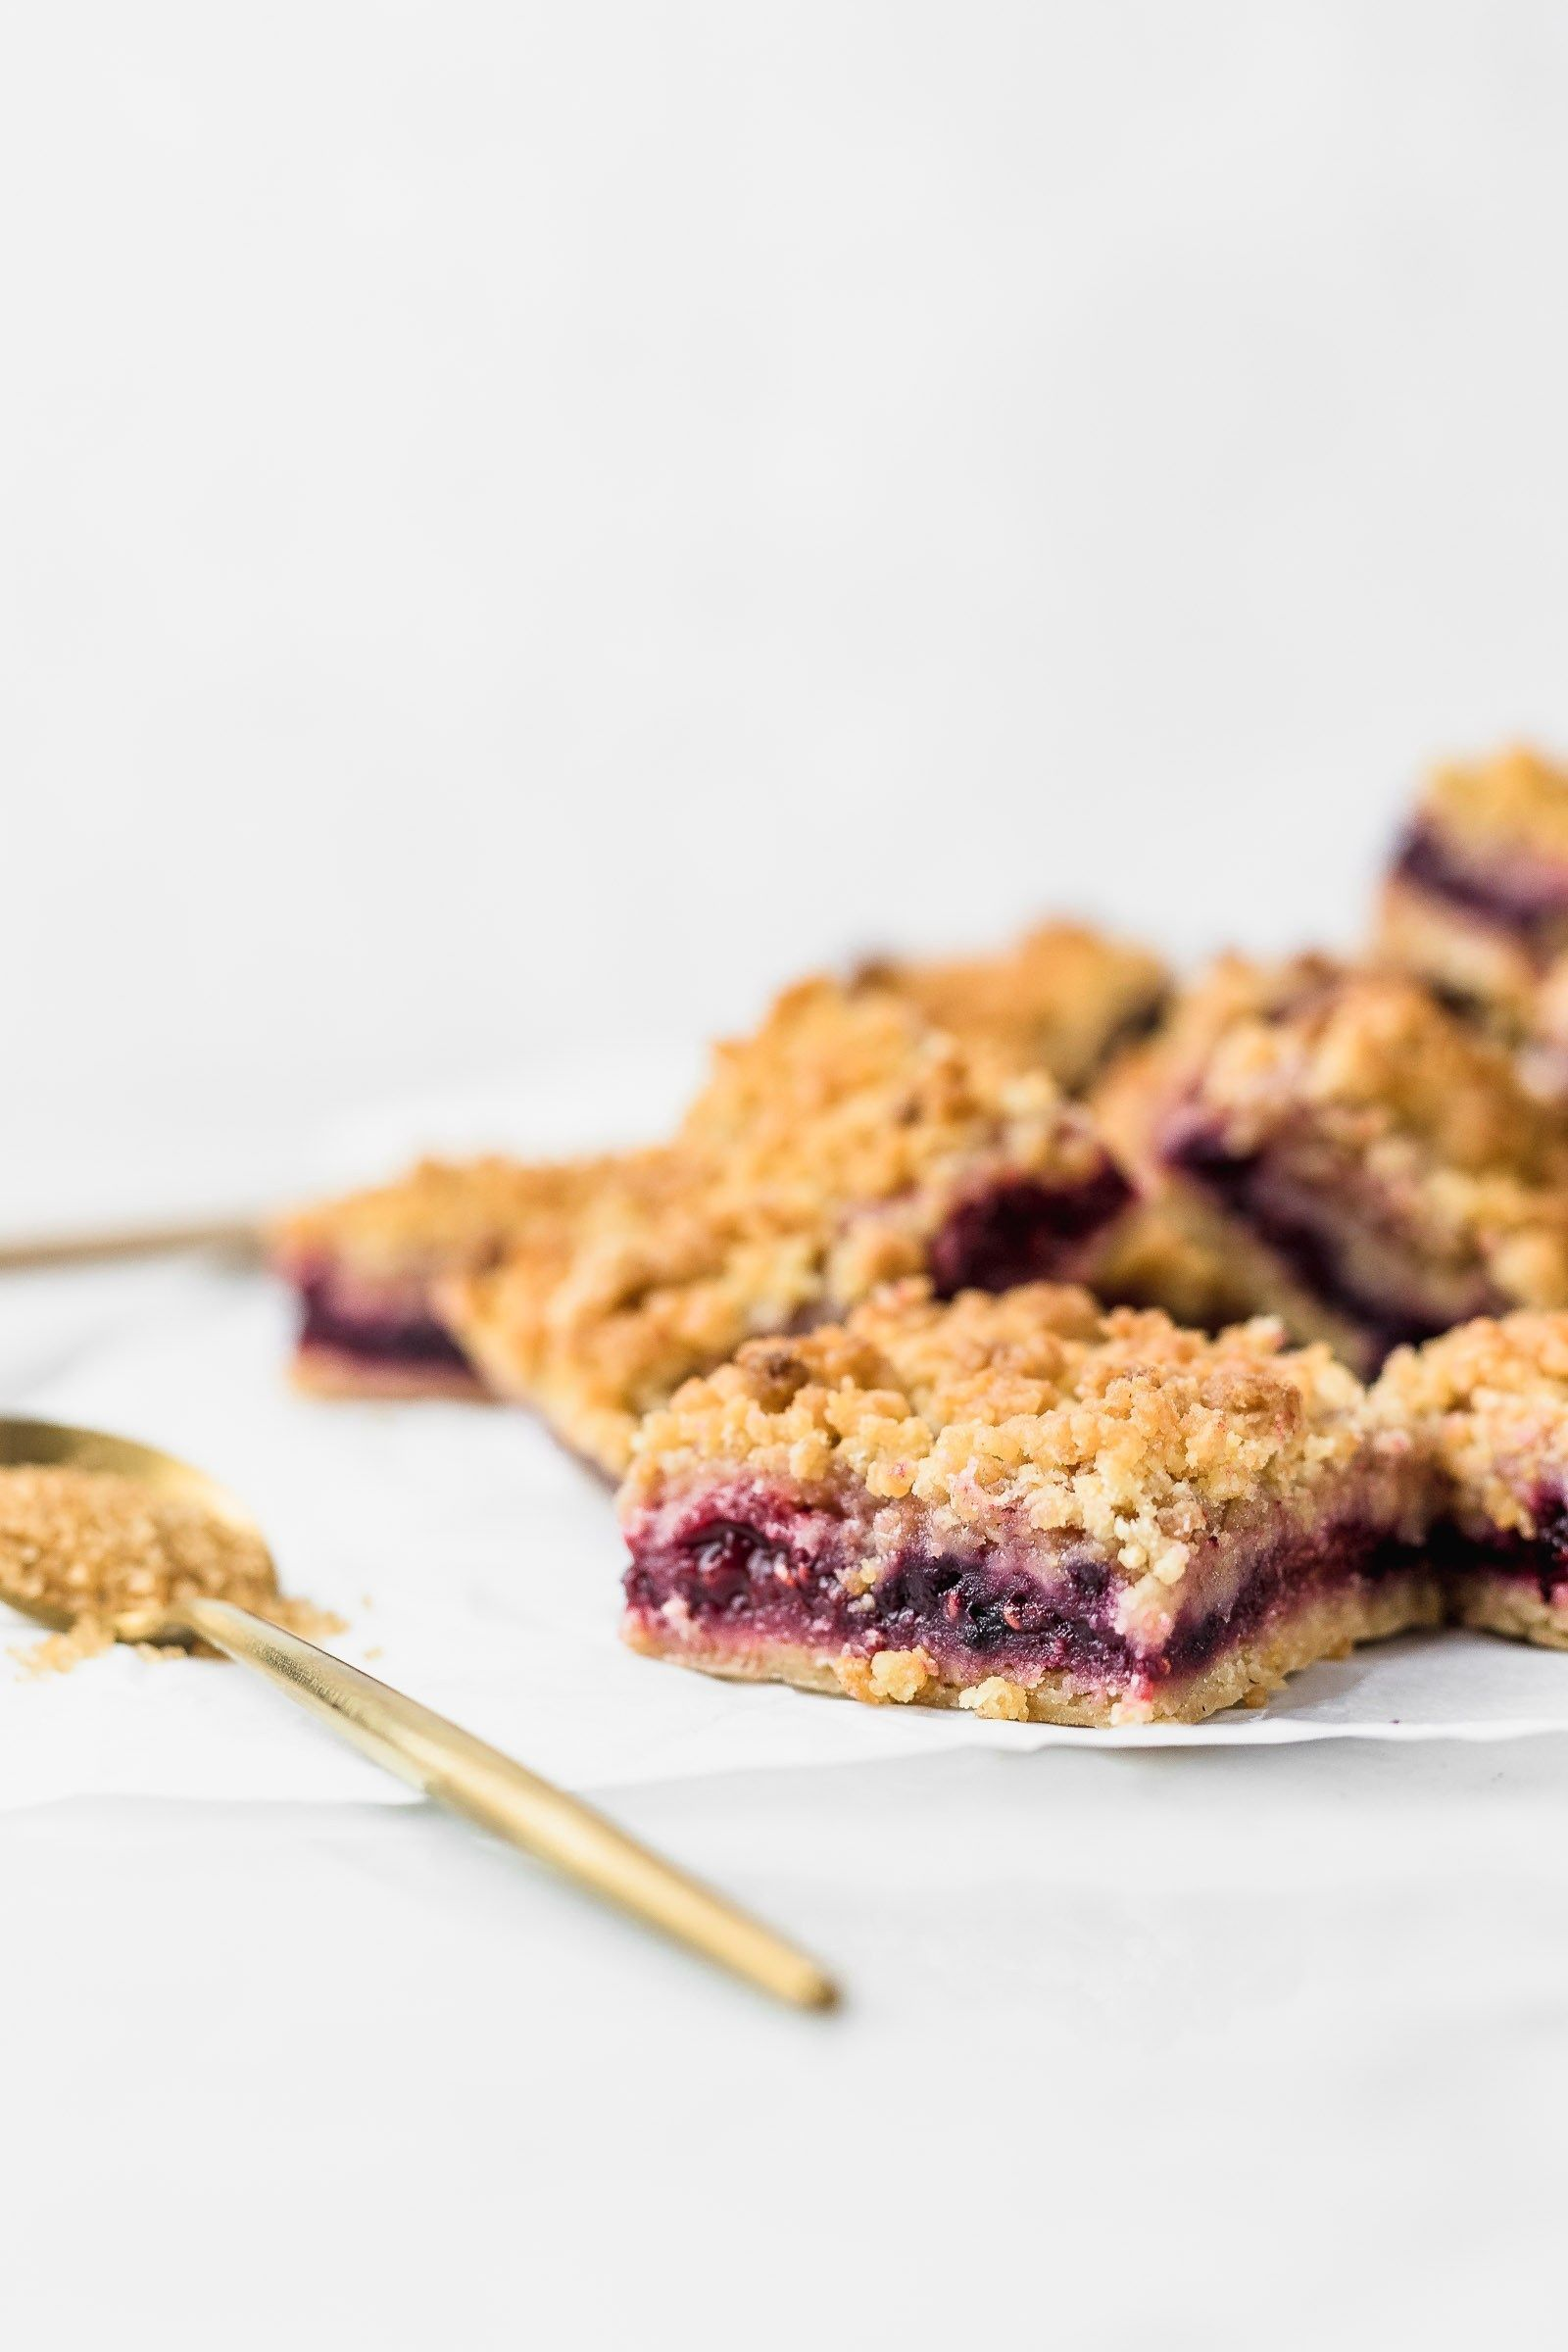 Amazing Mixed Berry Crumble Bars | Cravings Journal #berrycrumble Amazing Mixed Berry Crumble Bars | Cravings Journal #berrycrumble Amazing Mixed Berry Crumble Bars | Cravings Journal #berrycrumble Amazing Mixed Berry Crumble Bars | Cravings Journal #berrycrumble Amazing Mixed Berry Crumble Bars | Cravings Journal #berrycrumble Amazing Mixed Berry Crumble Bars | Cravings Journal #berrycrumble Amazing Mixed Berry Crumble Bars | Cravings Journal #berrycrumble Amazing Mixed Berry Crumble Bars | Cra